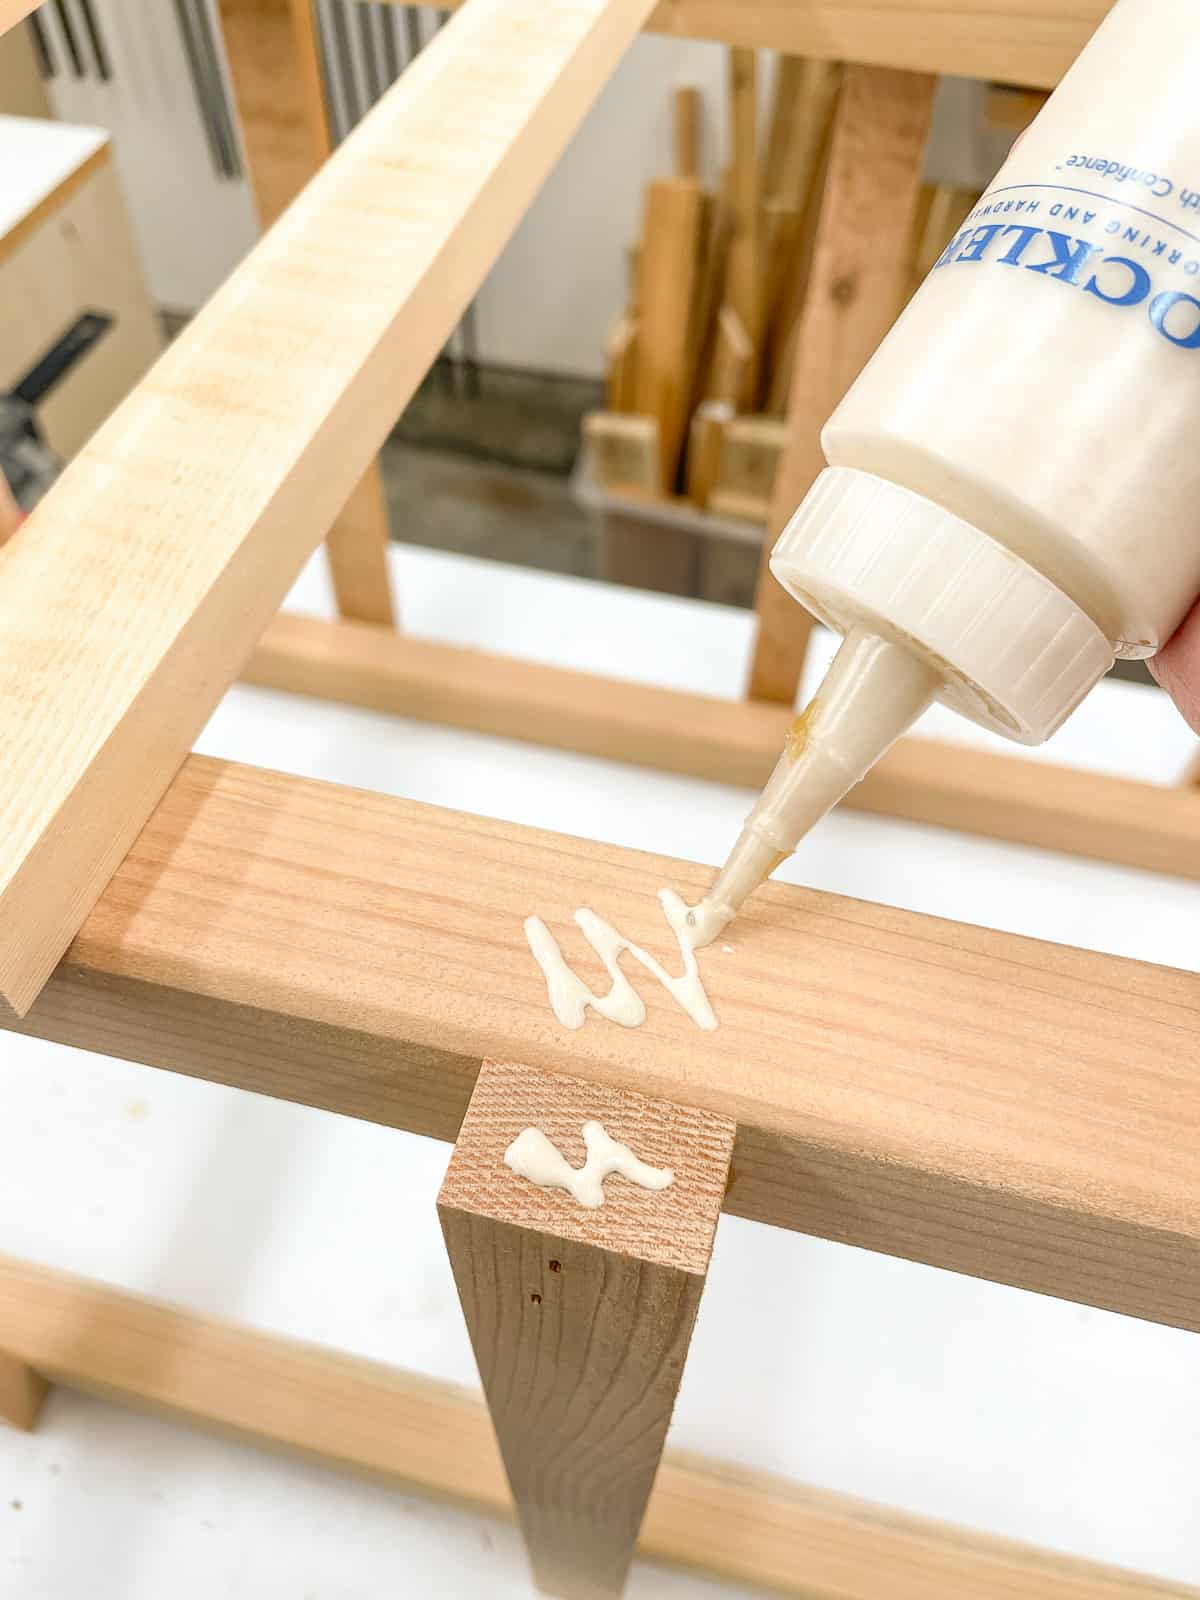 wood glue on joint between tomato cage slats